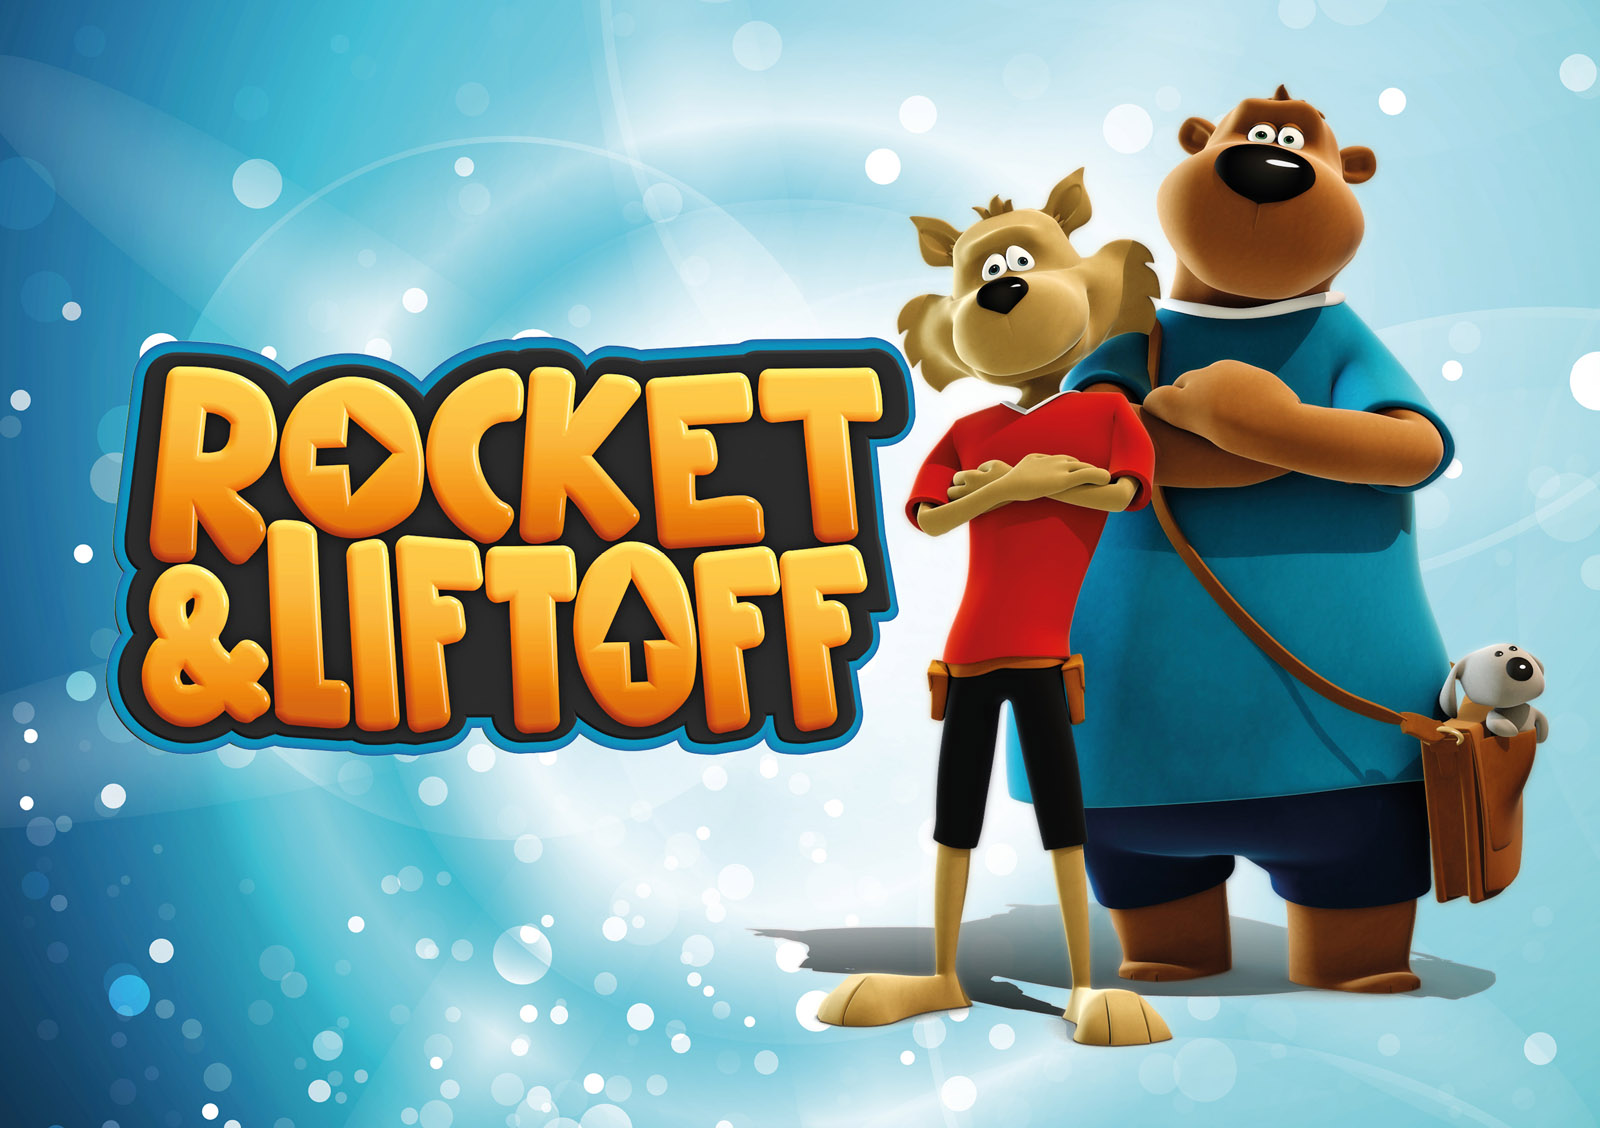 Rocket&Liftoff children's cartoon